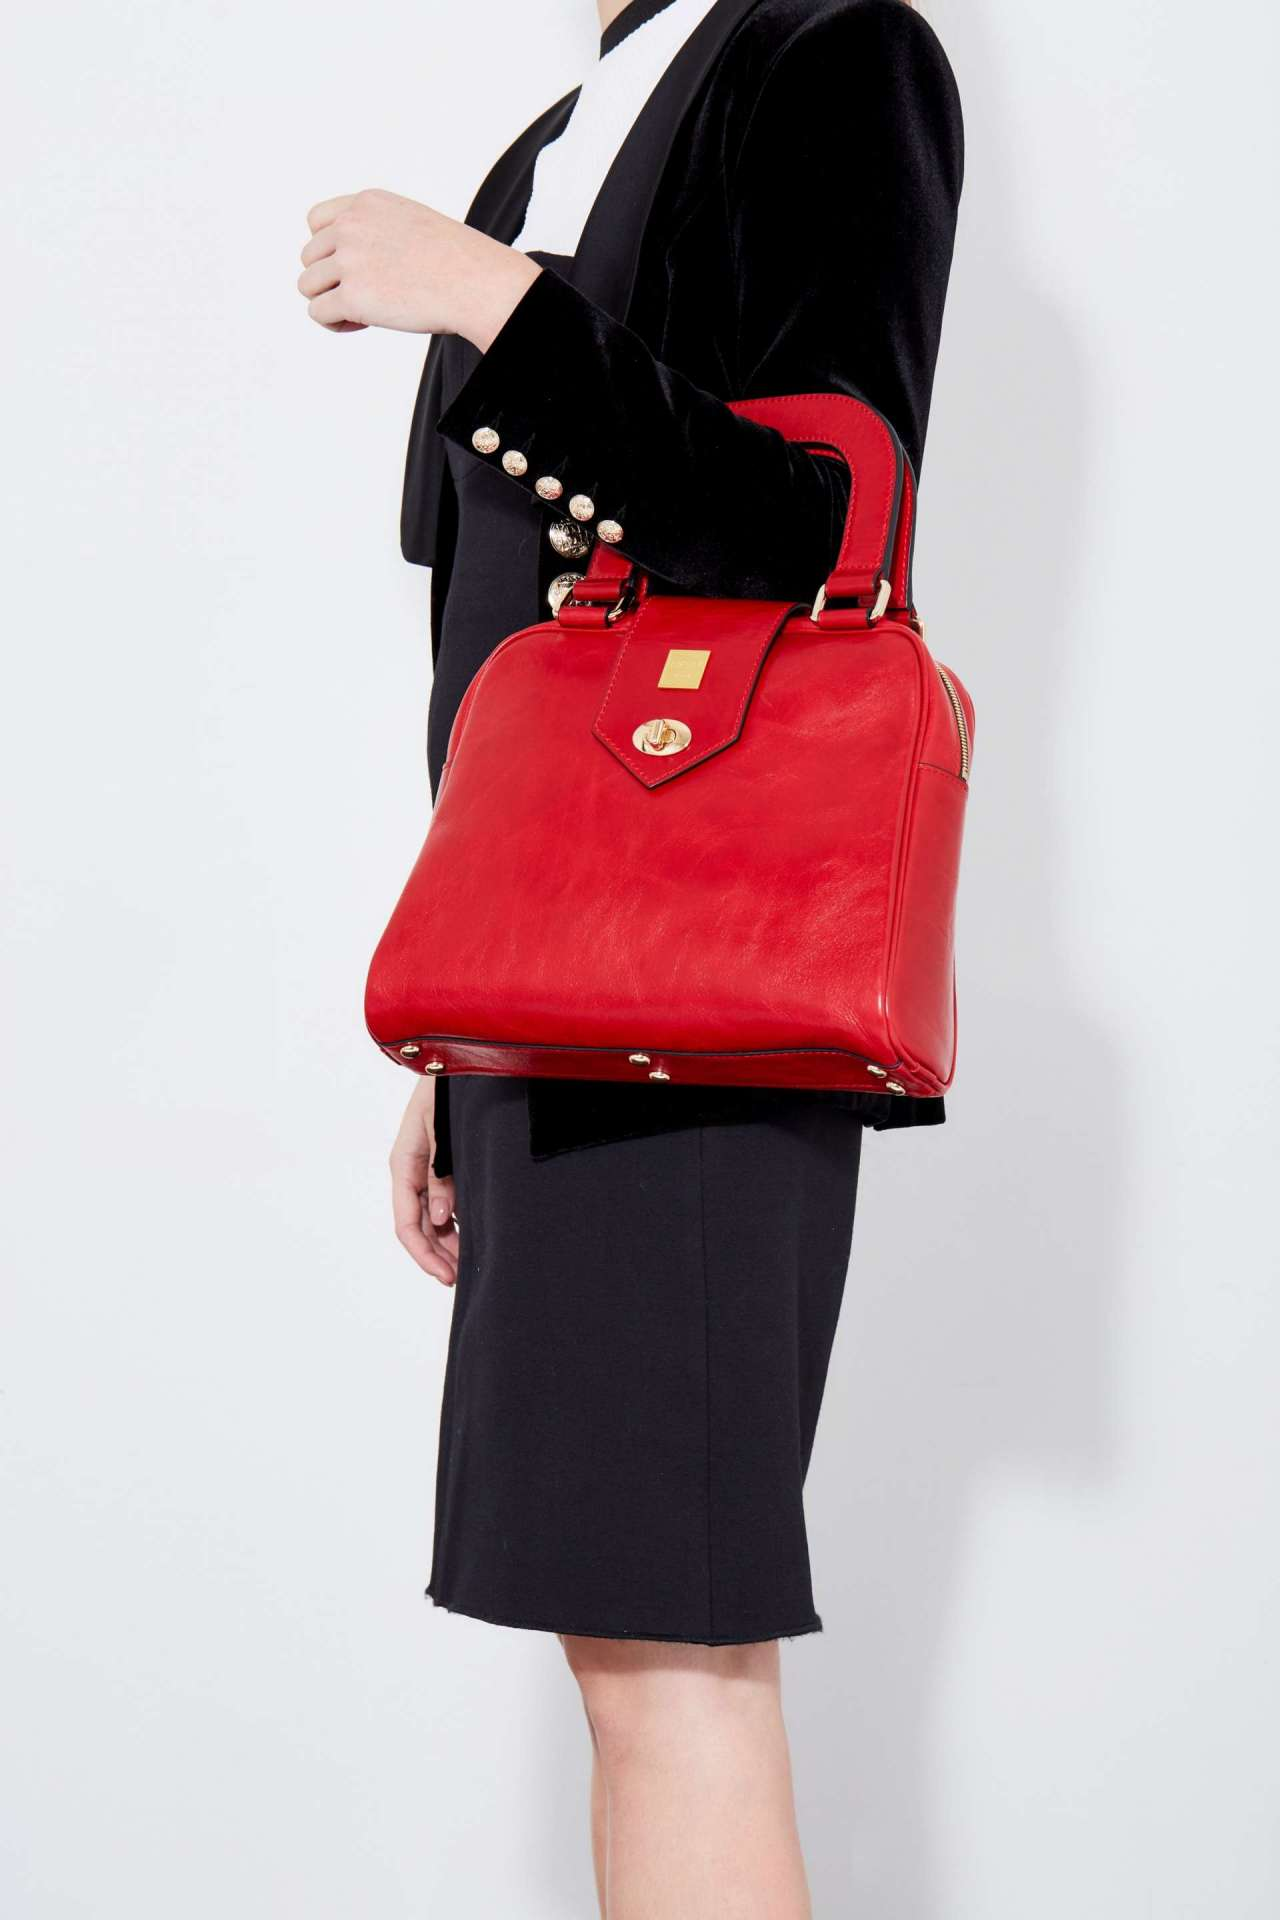 The Ballad Handbag in Red Italian Leather